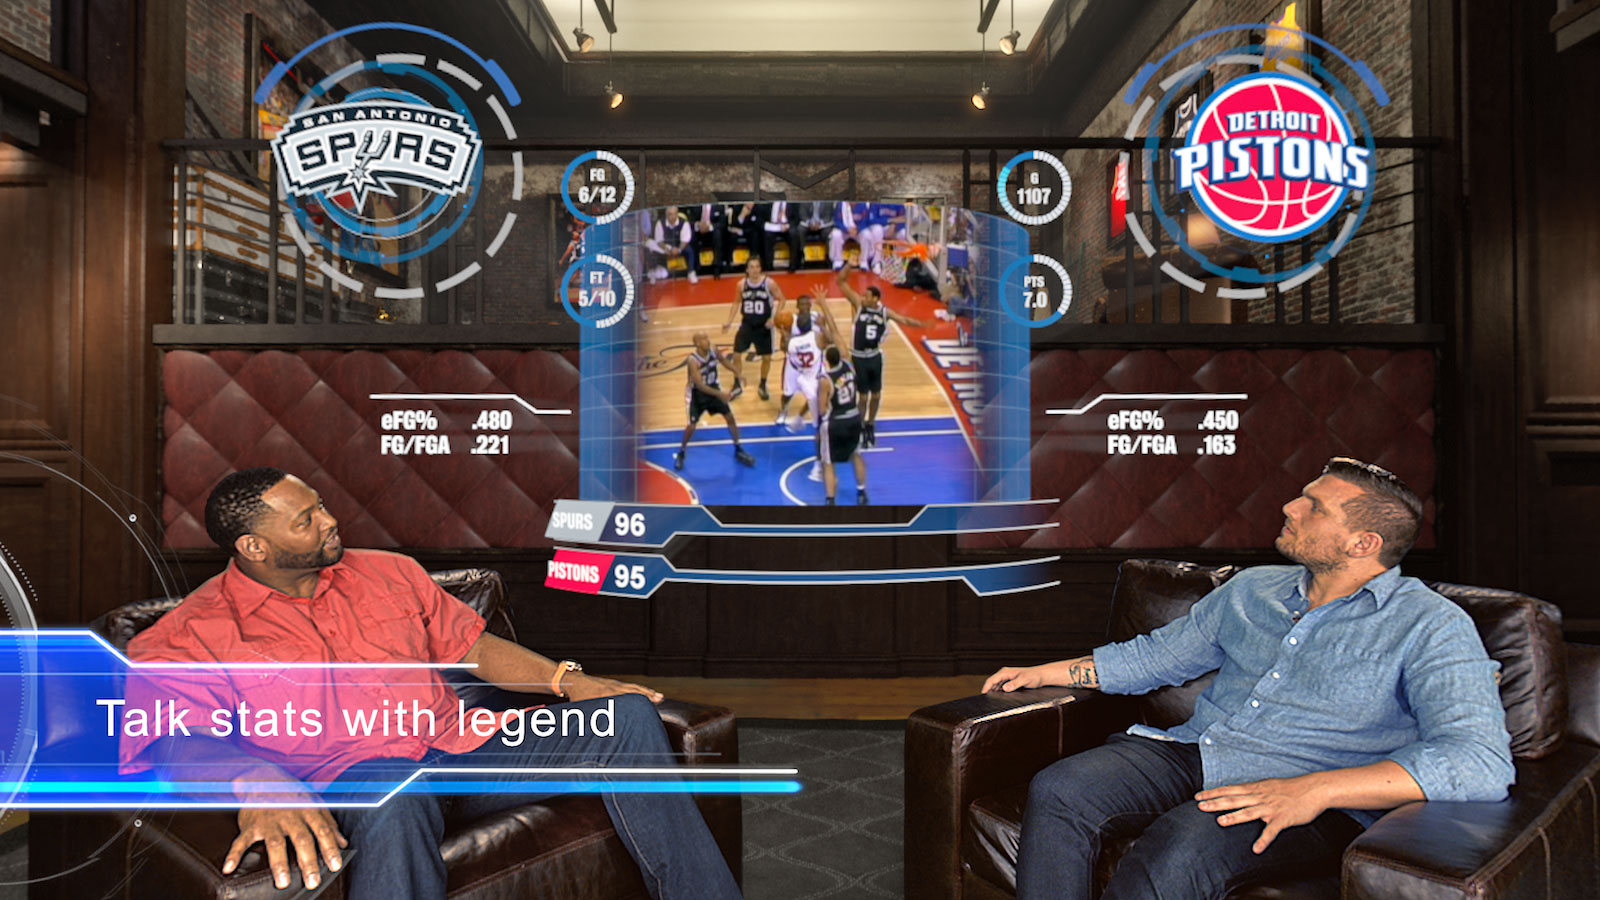 The NBA made an original show for Google's Daydream VR platform